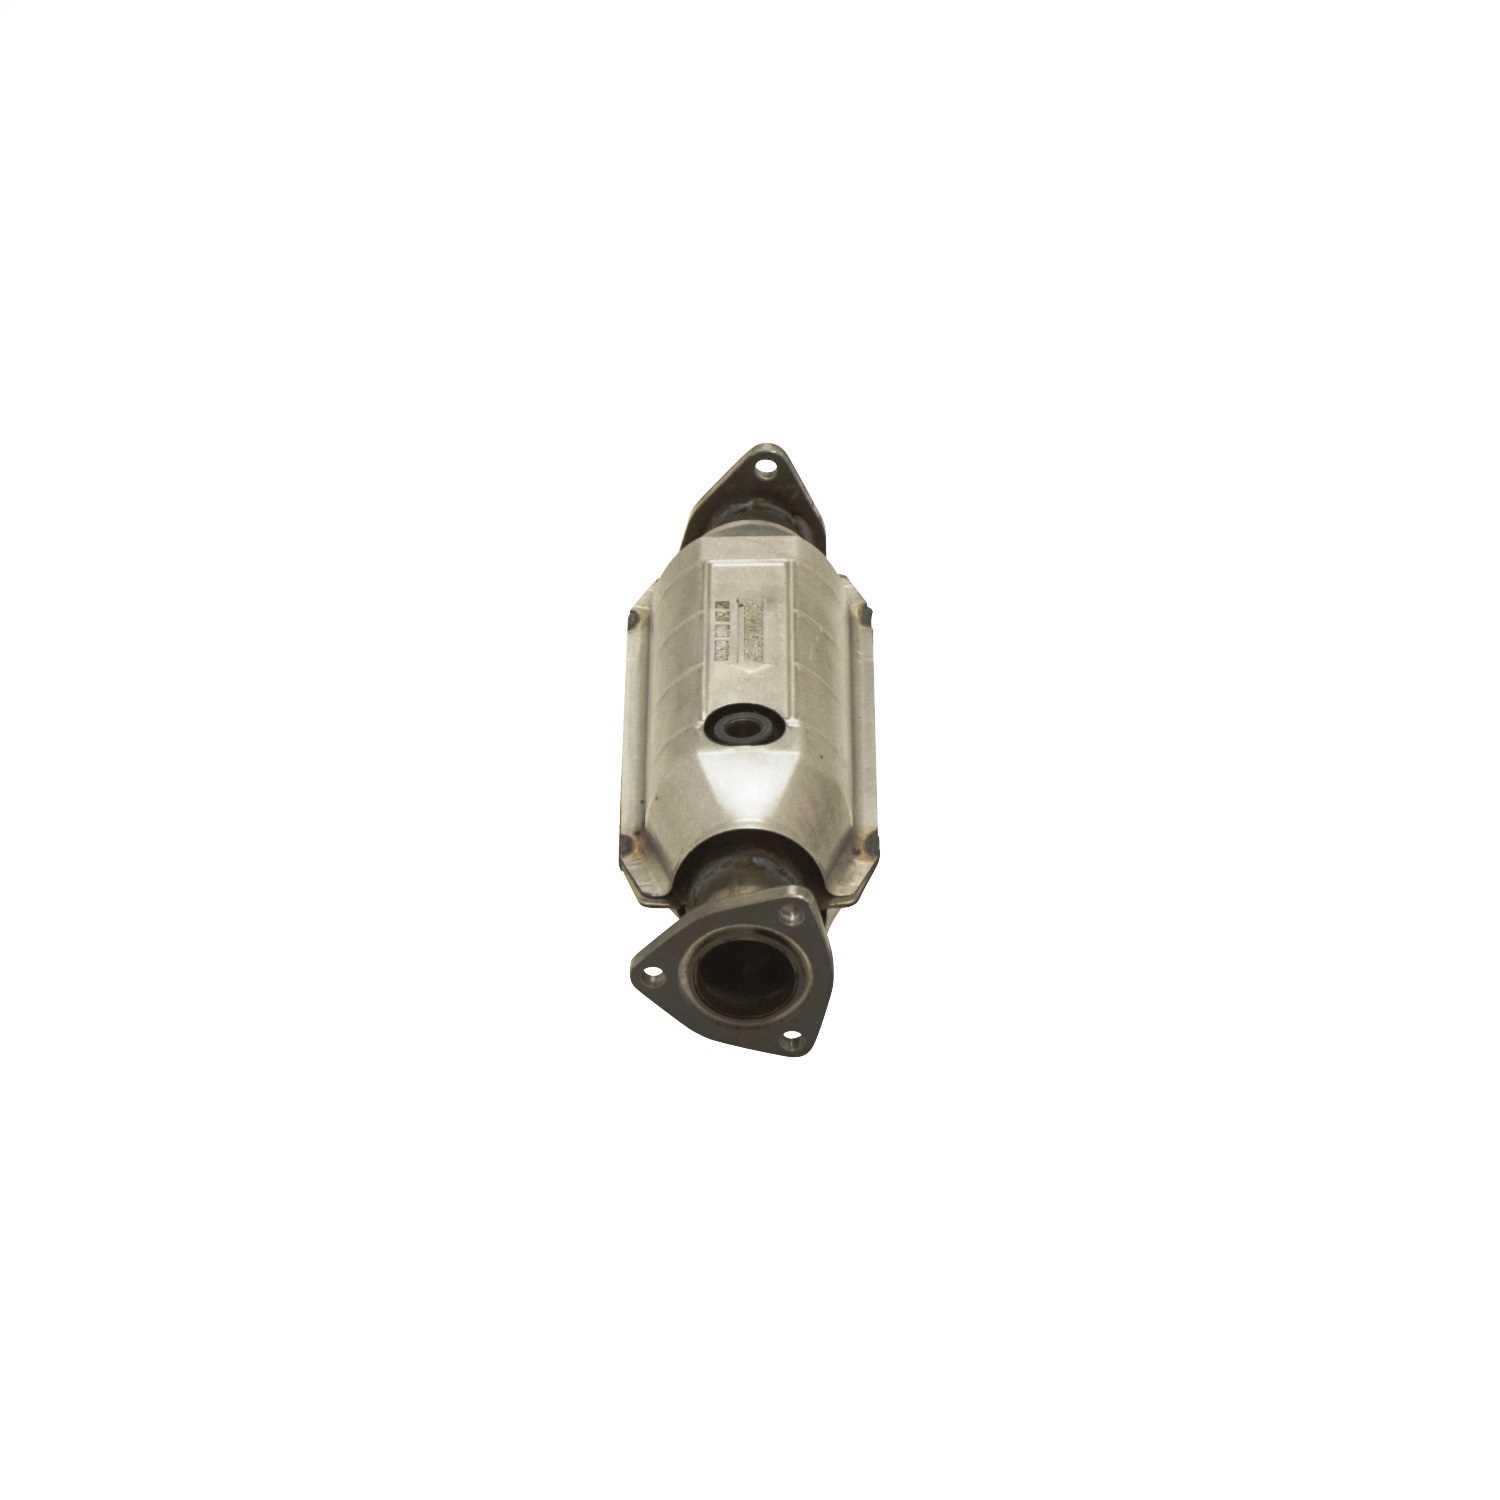 2060001 Flowmaster 49 State Catalytic Converters Direct Fit Catalytic Converter